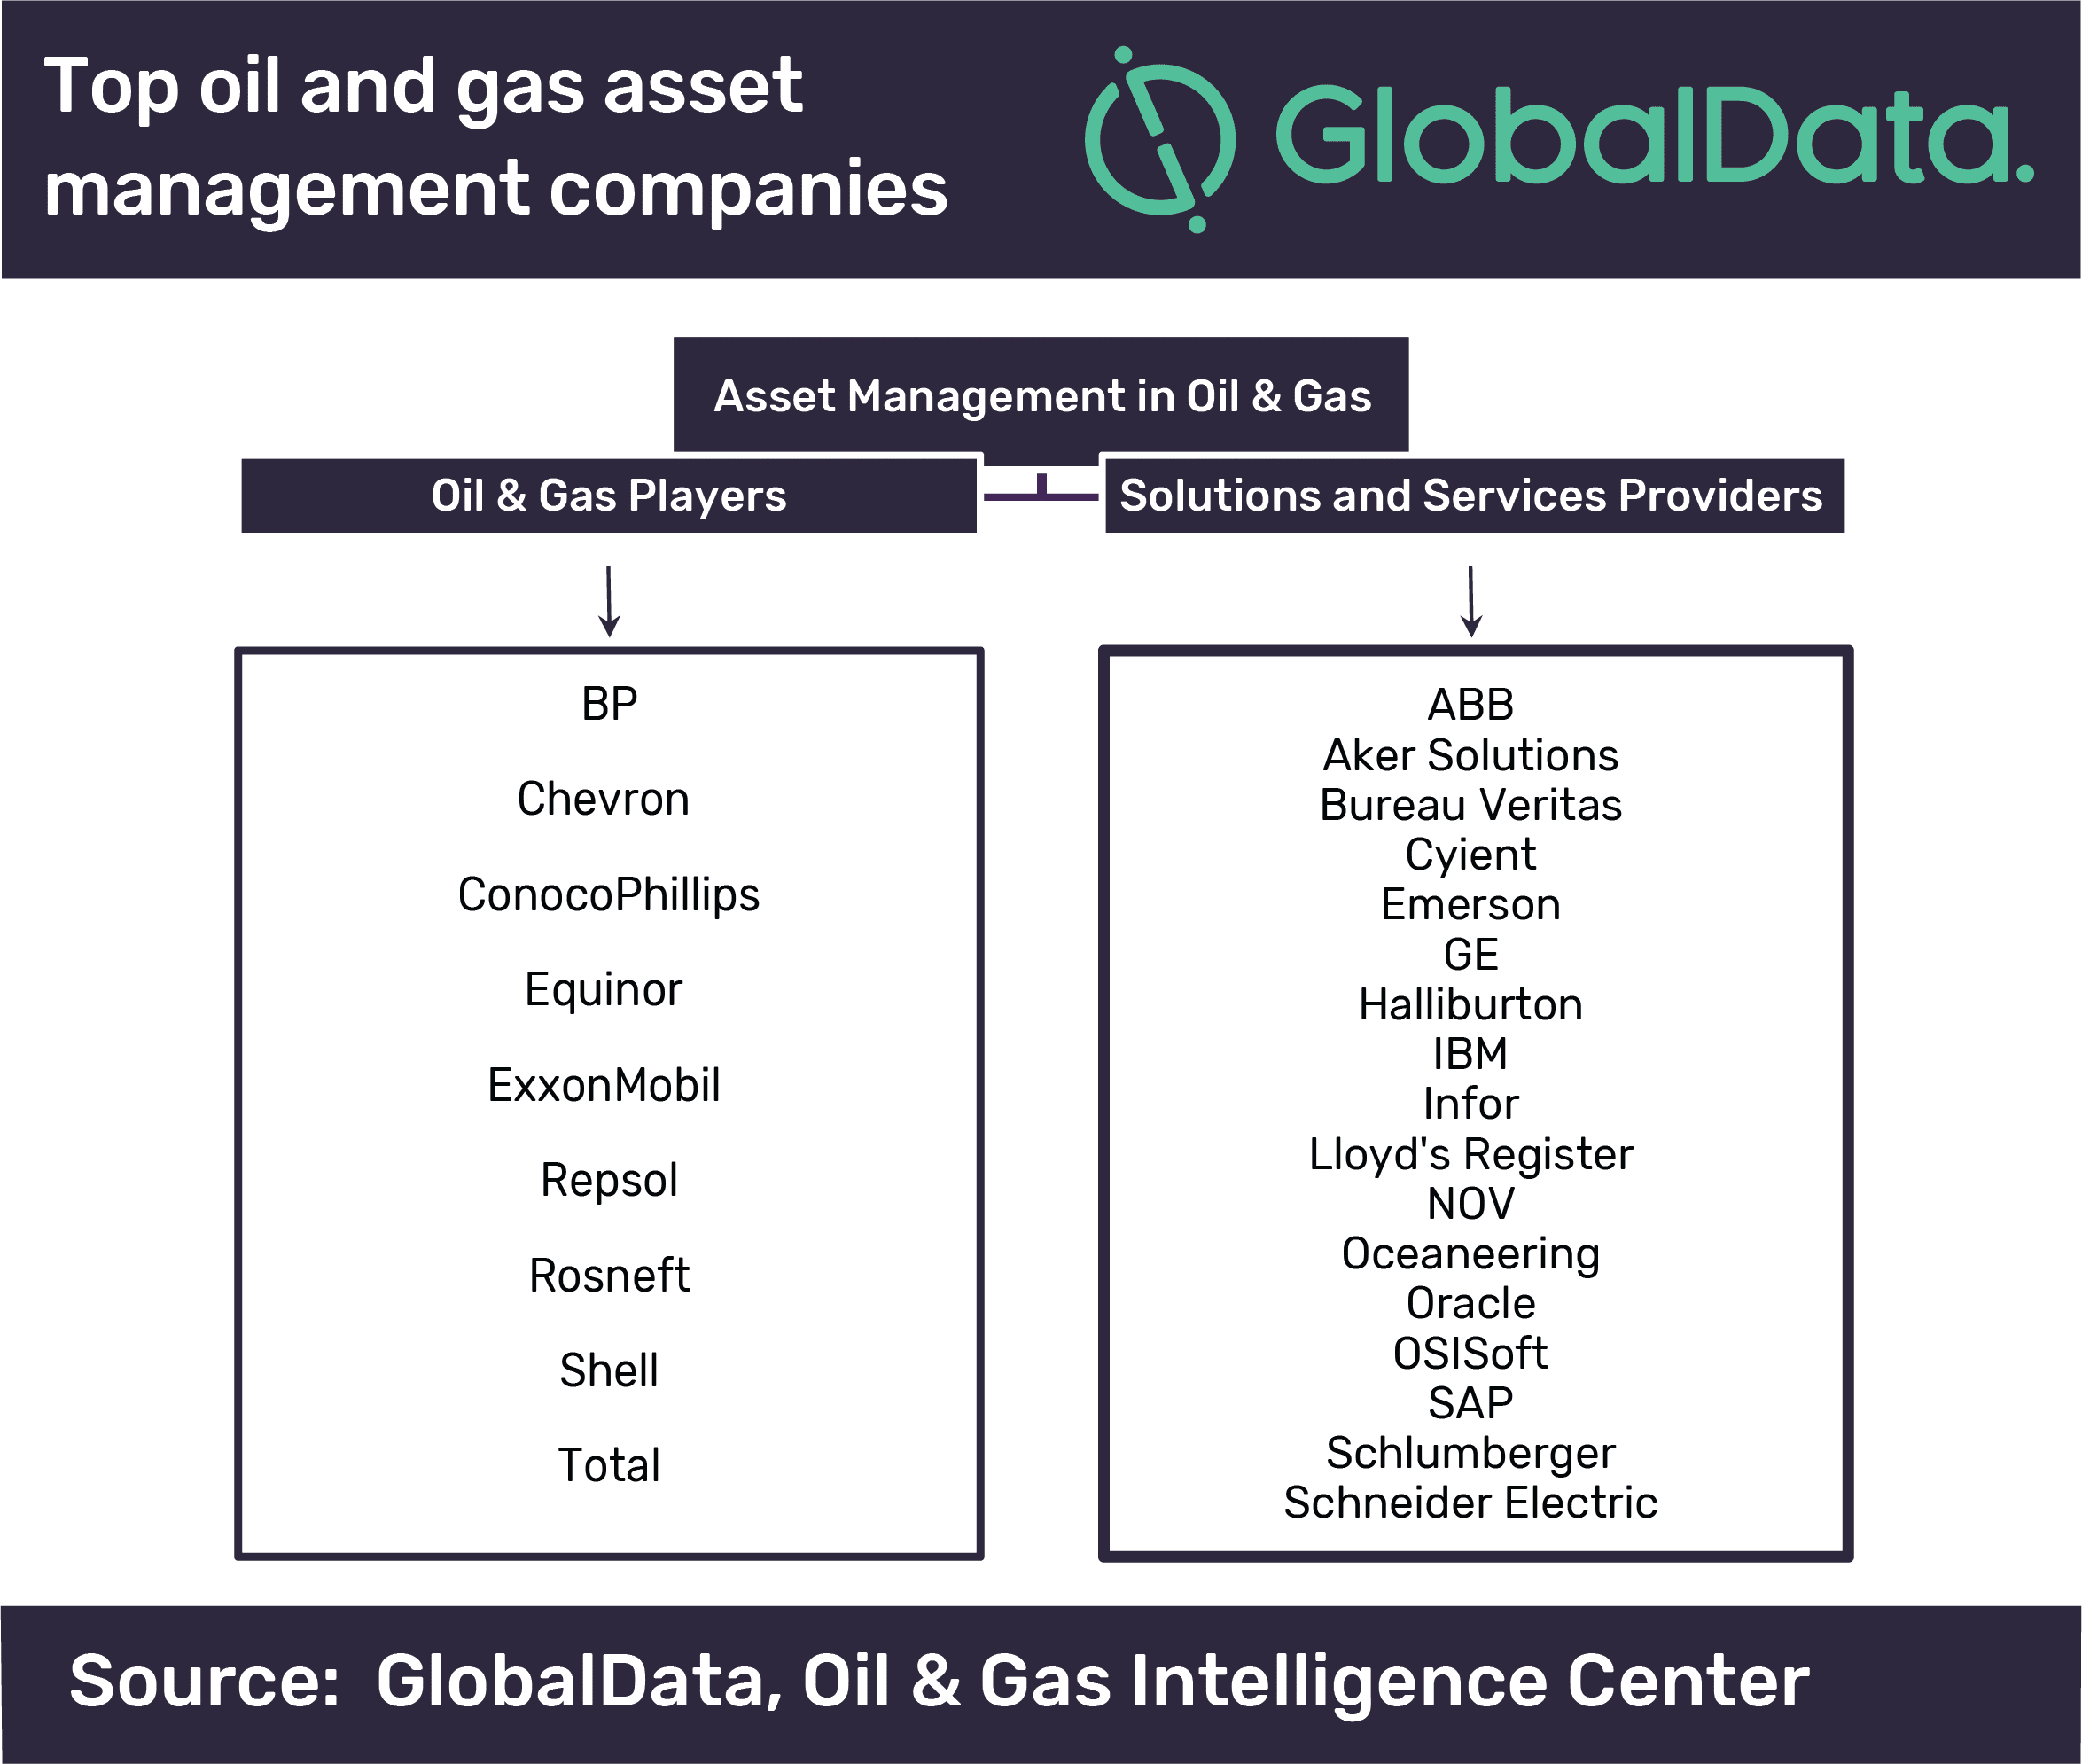 Increasing emphasis placed on asset management in oil and gas operations required, says GlobalData